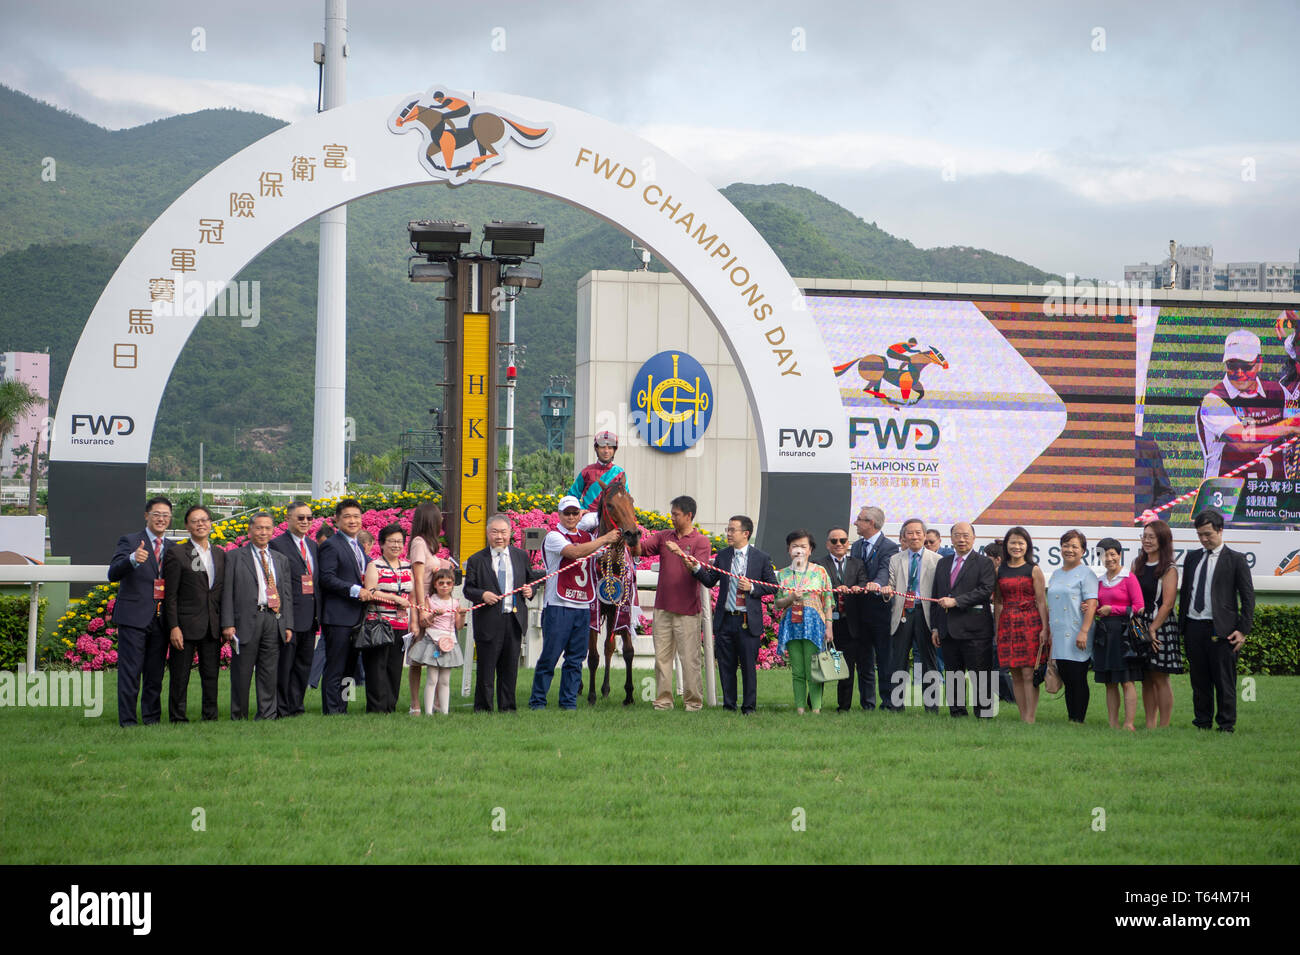 April 28, 2019 - Hong Kong, U.S. - SHA TIN, HONG KONG – APRIL 28: Beat The Clock, ridden by Joao Moreira wins The Group 1 Chairman's Sprint Prize on FWD Champions Day at Sha Tin Racecourse in Hong Kong. Michael McInally/Eclipse Sportswire/CSM - Stock Image